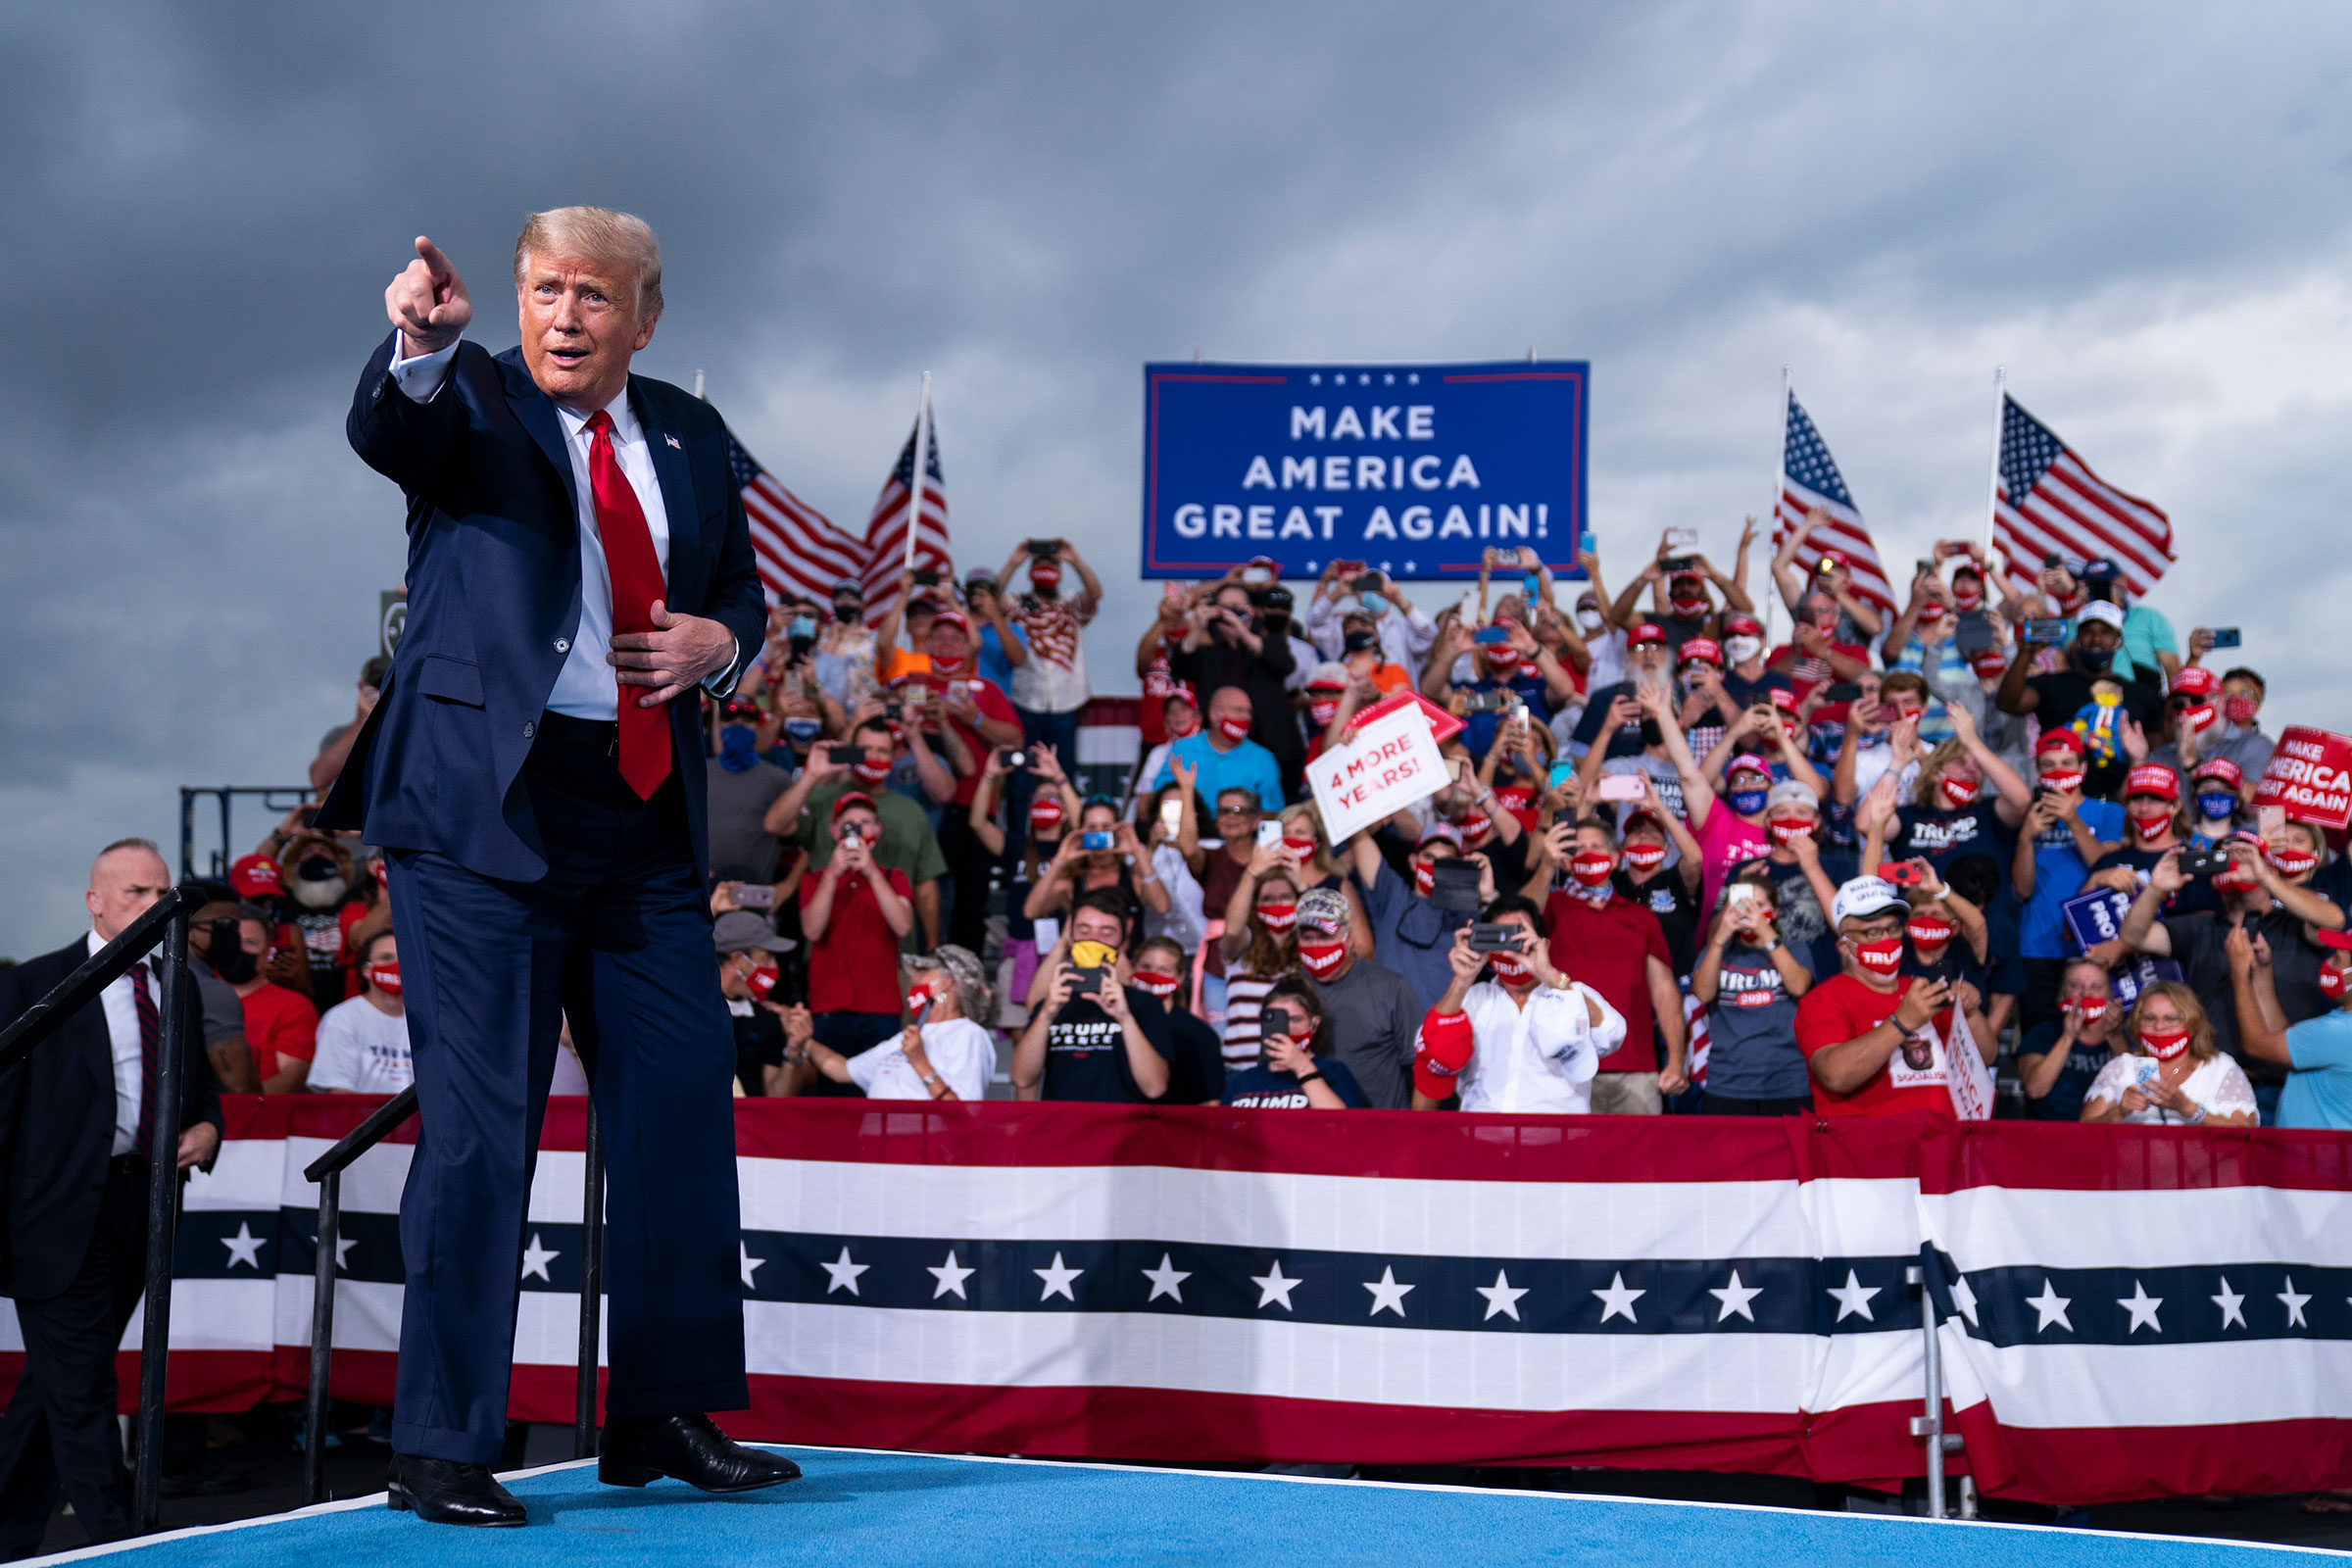 President Donald Trump arrives to speak at a campaign rally at Smith Reynolds Airport, on Sept. 8, 2020, in Winston-Salem, N.C.